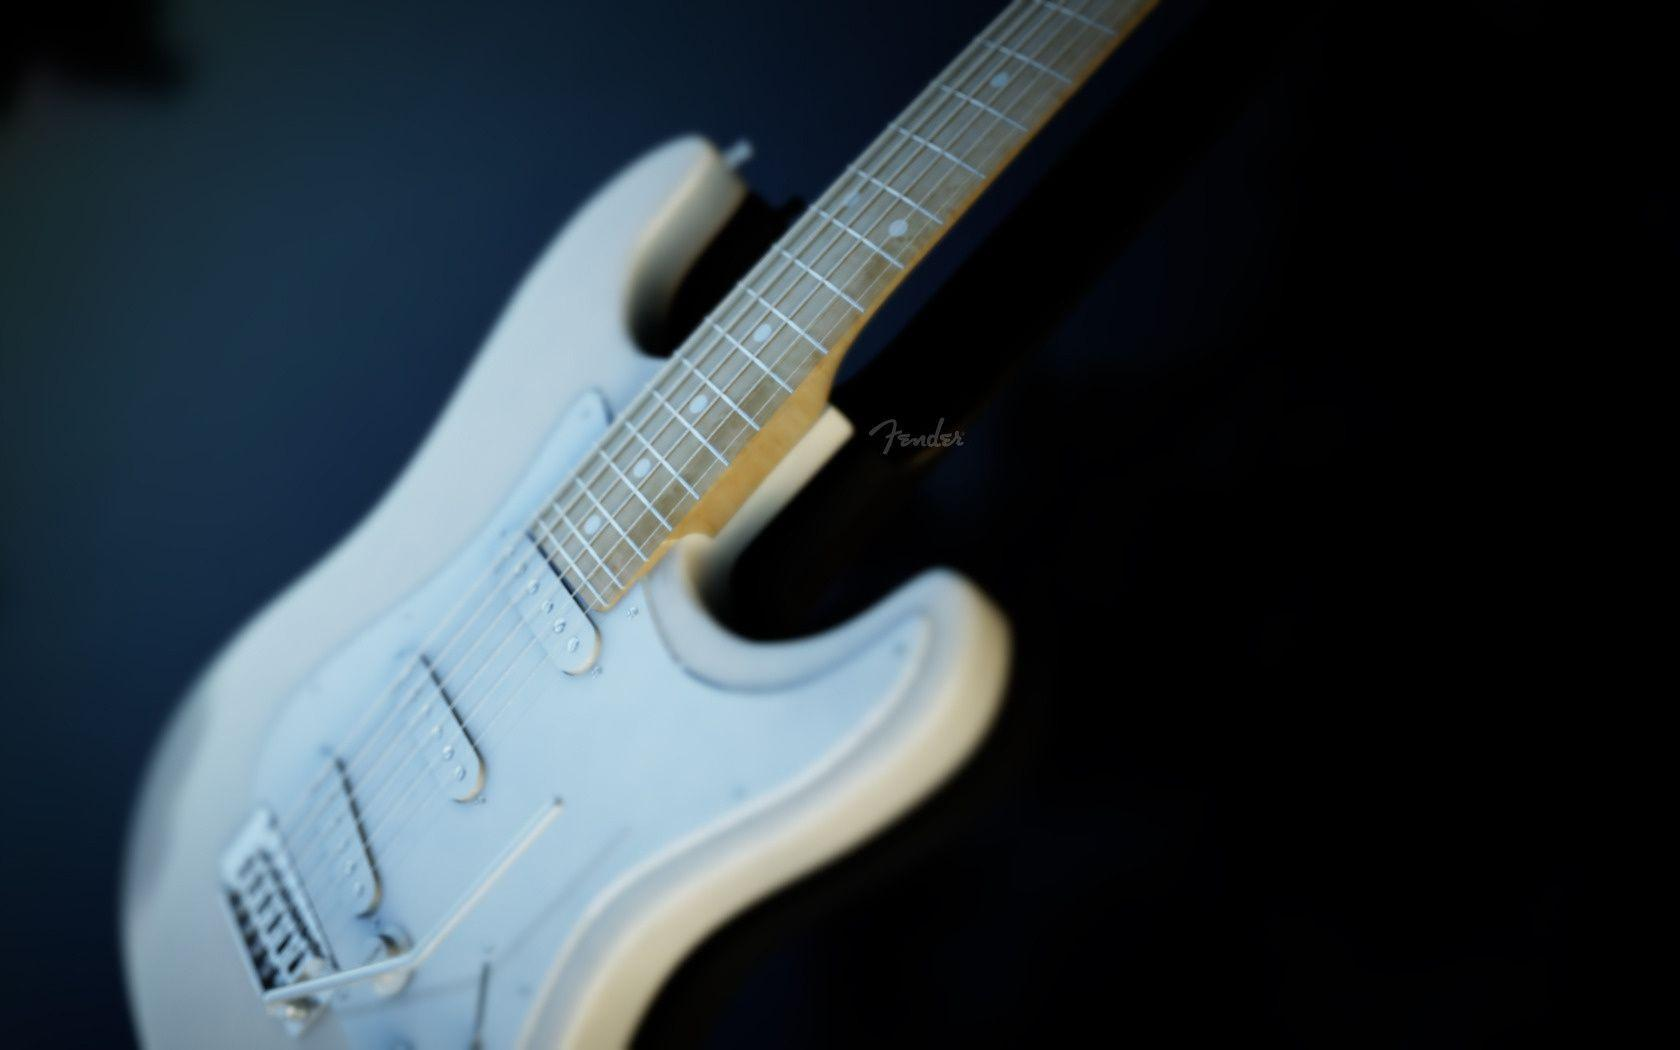 Fender Guitar Wallpapers For Desktop Images amp Pictures   Becuo 1680x1050